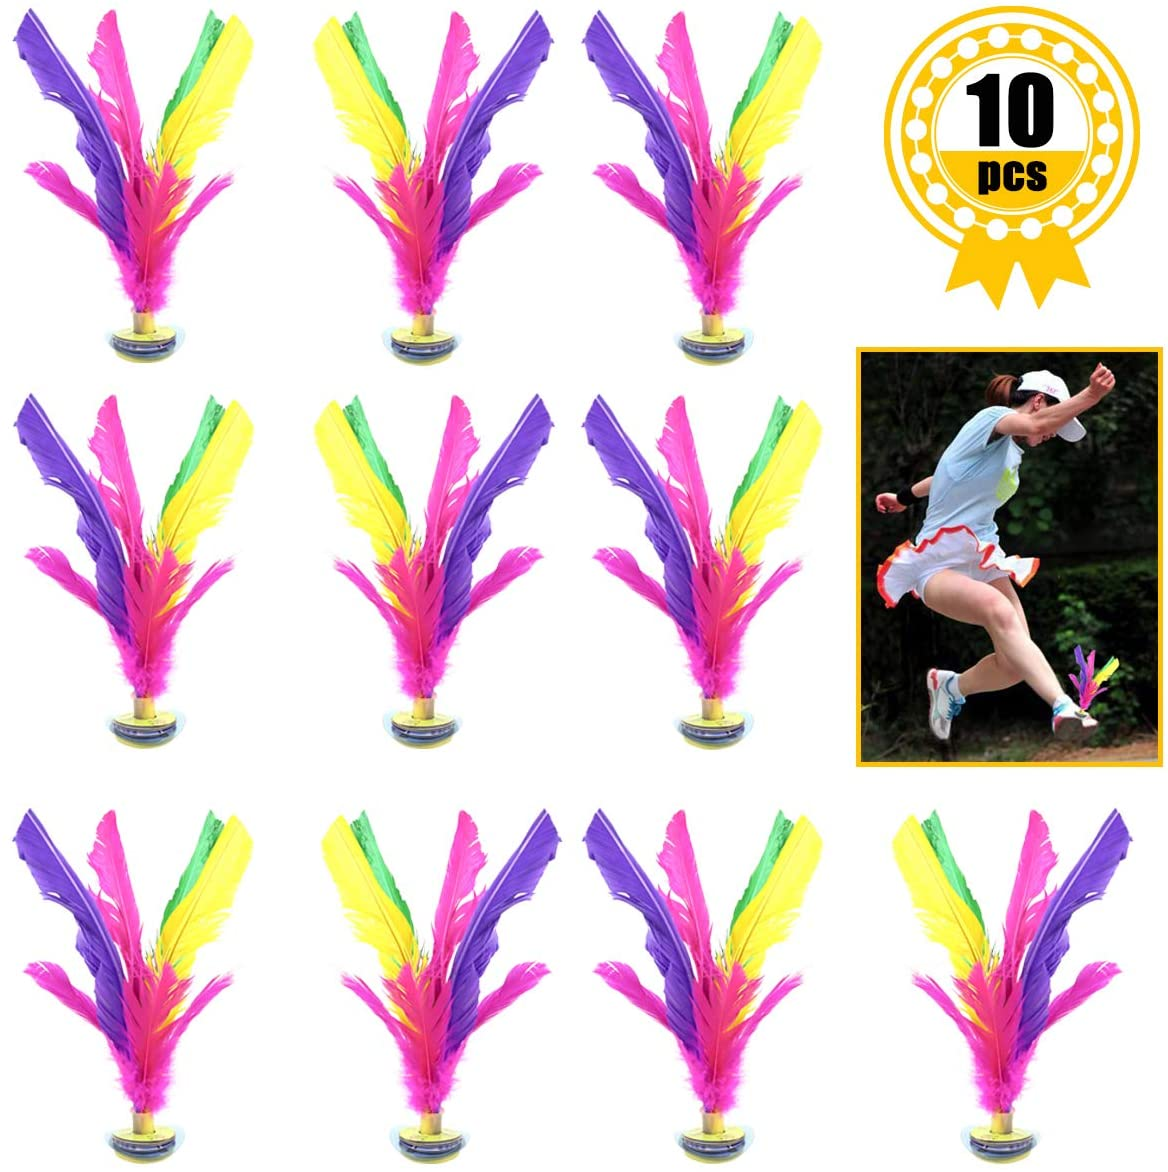 YG_Oline 10 Pack Colorful Kick Shuttlecock Chinese Jianzi, 8 inch Foot Sport Outdoor Toy for Improving Leg Muscle Strength and Body Flexibility